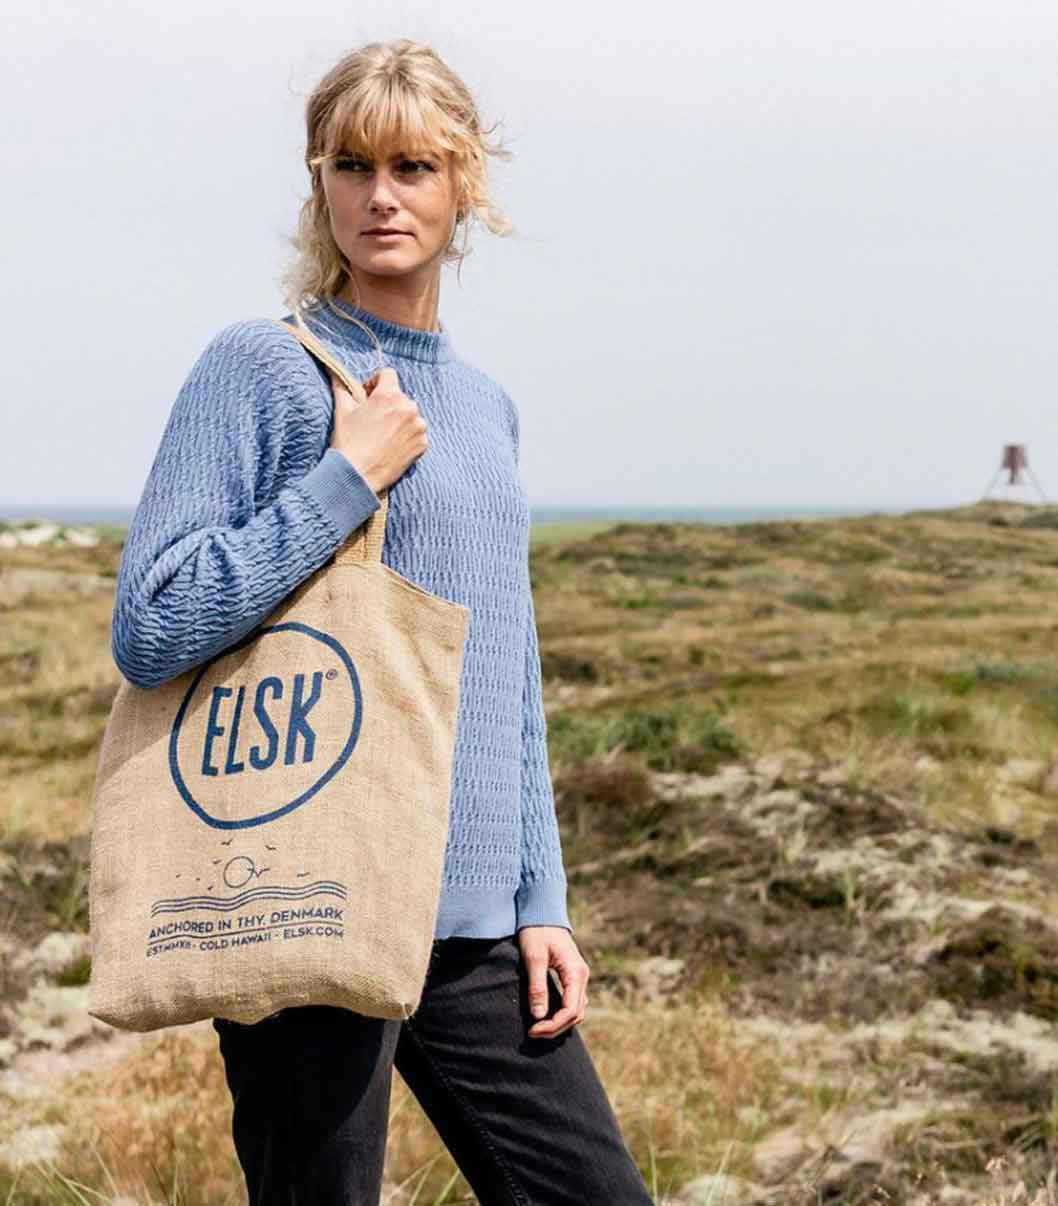 ELSK DENMARK BRAND sustainable good fashion guide ECOLOOKBOOK